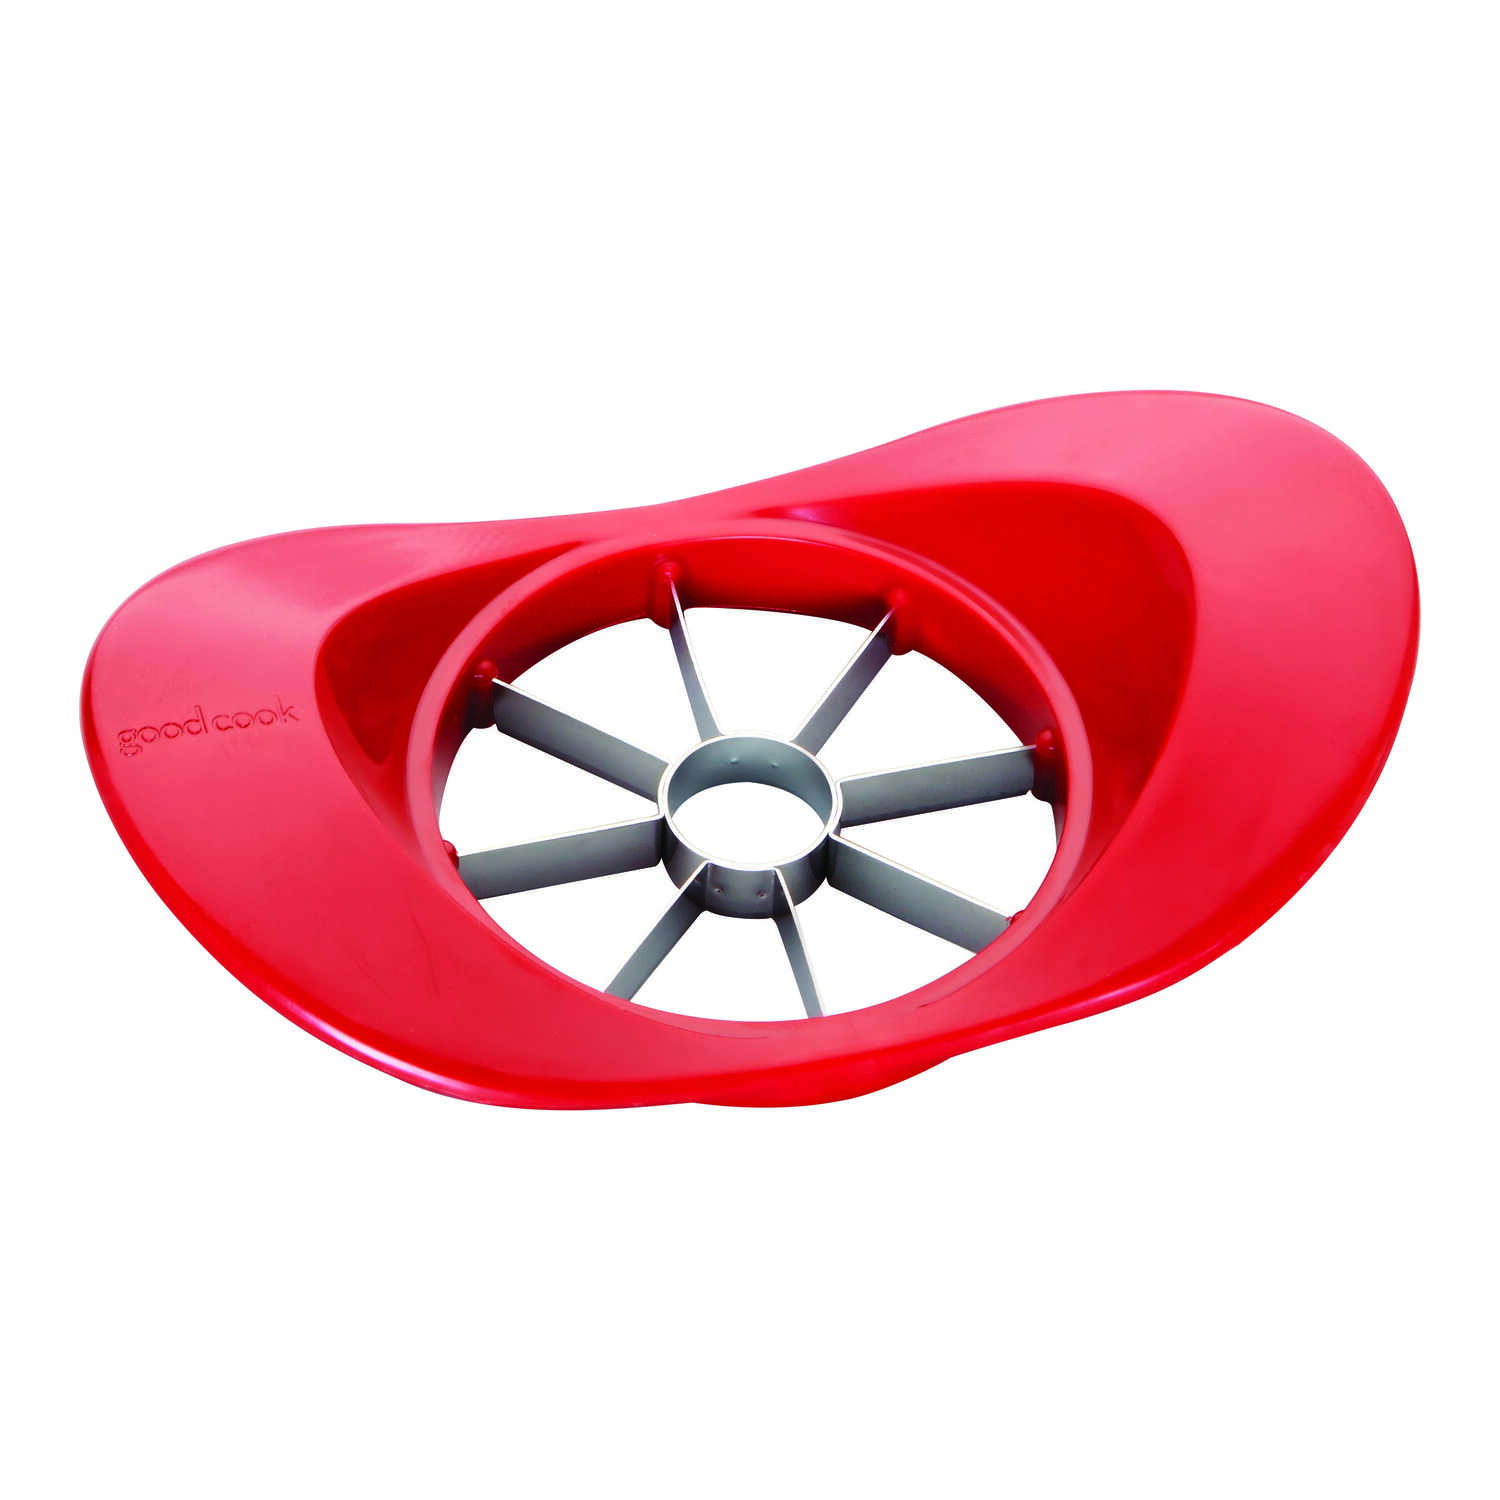 Good Cook  Red  Apple Slicer and Corer